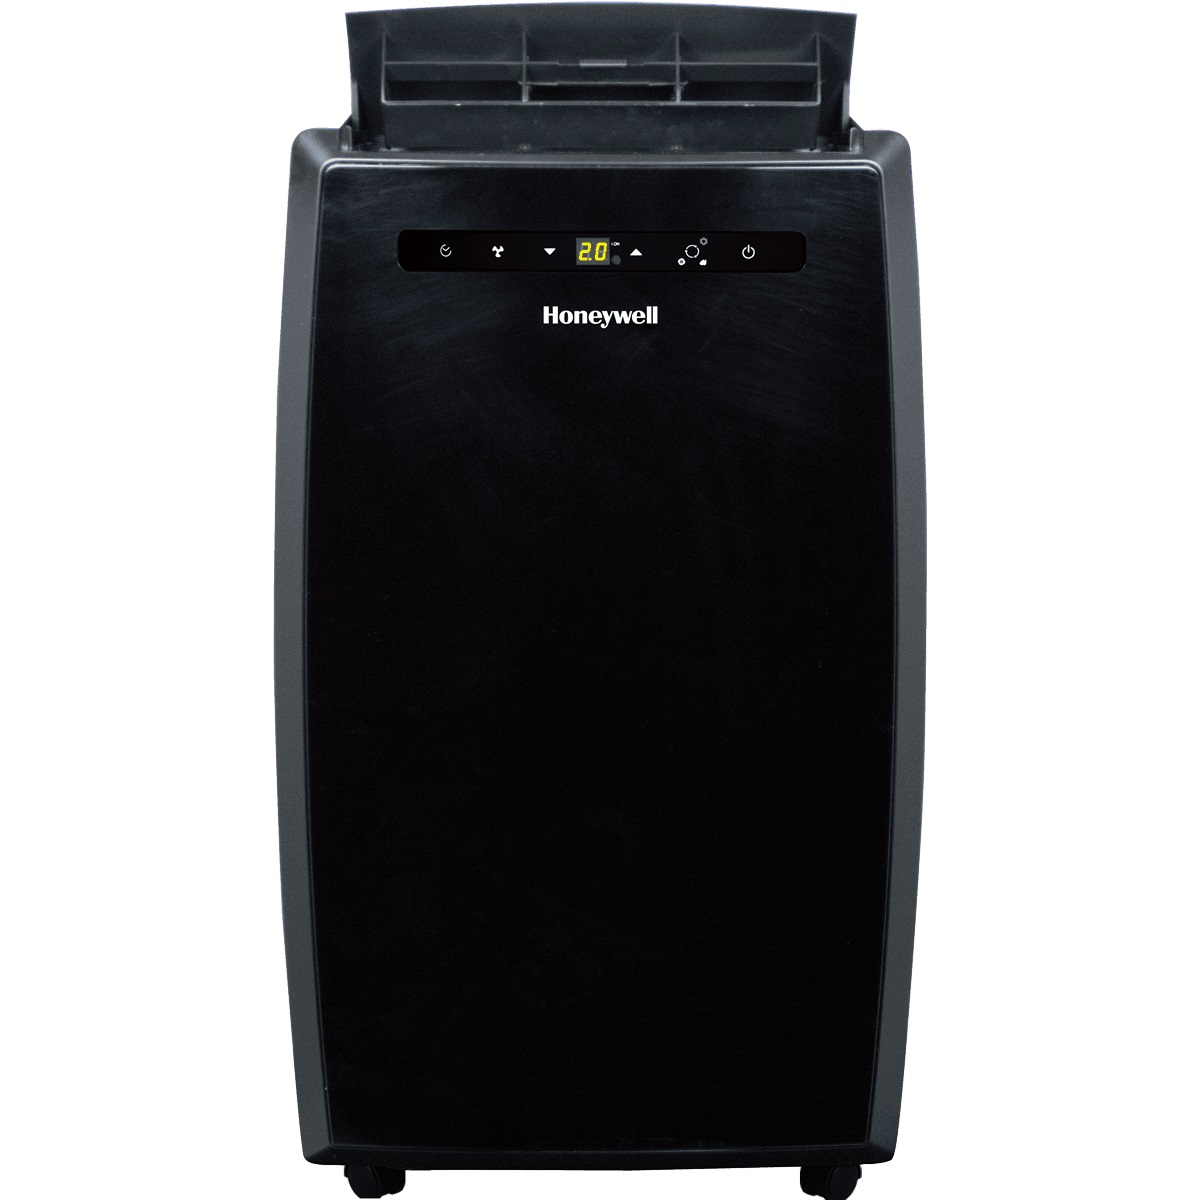 Honeywell MN10CESBB Portable Air Conditioner, 10,000 BTU Cooling, LED Display, Single Hose (Black)